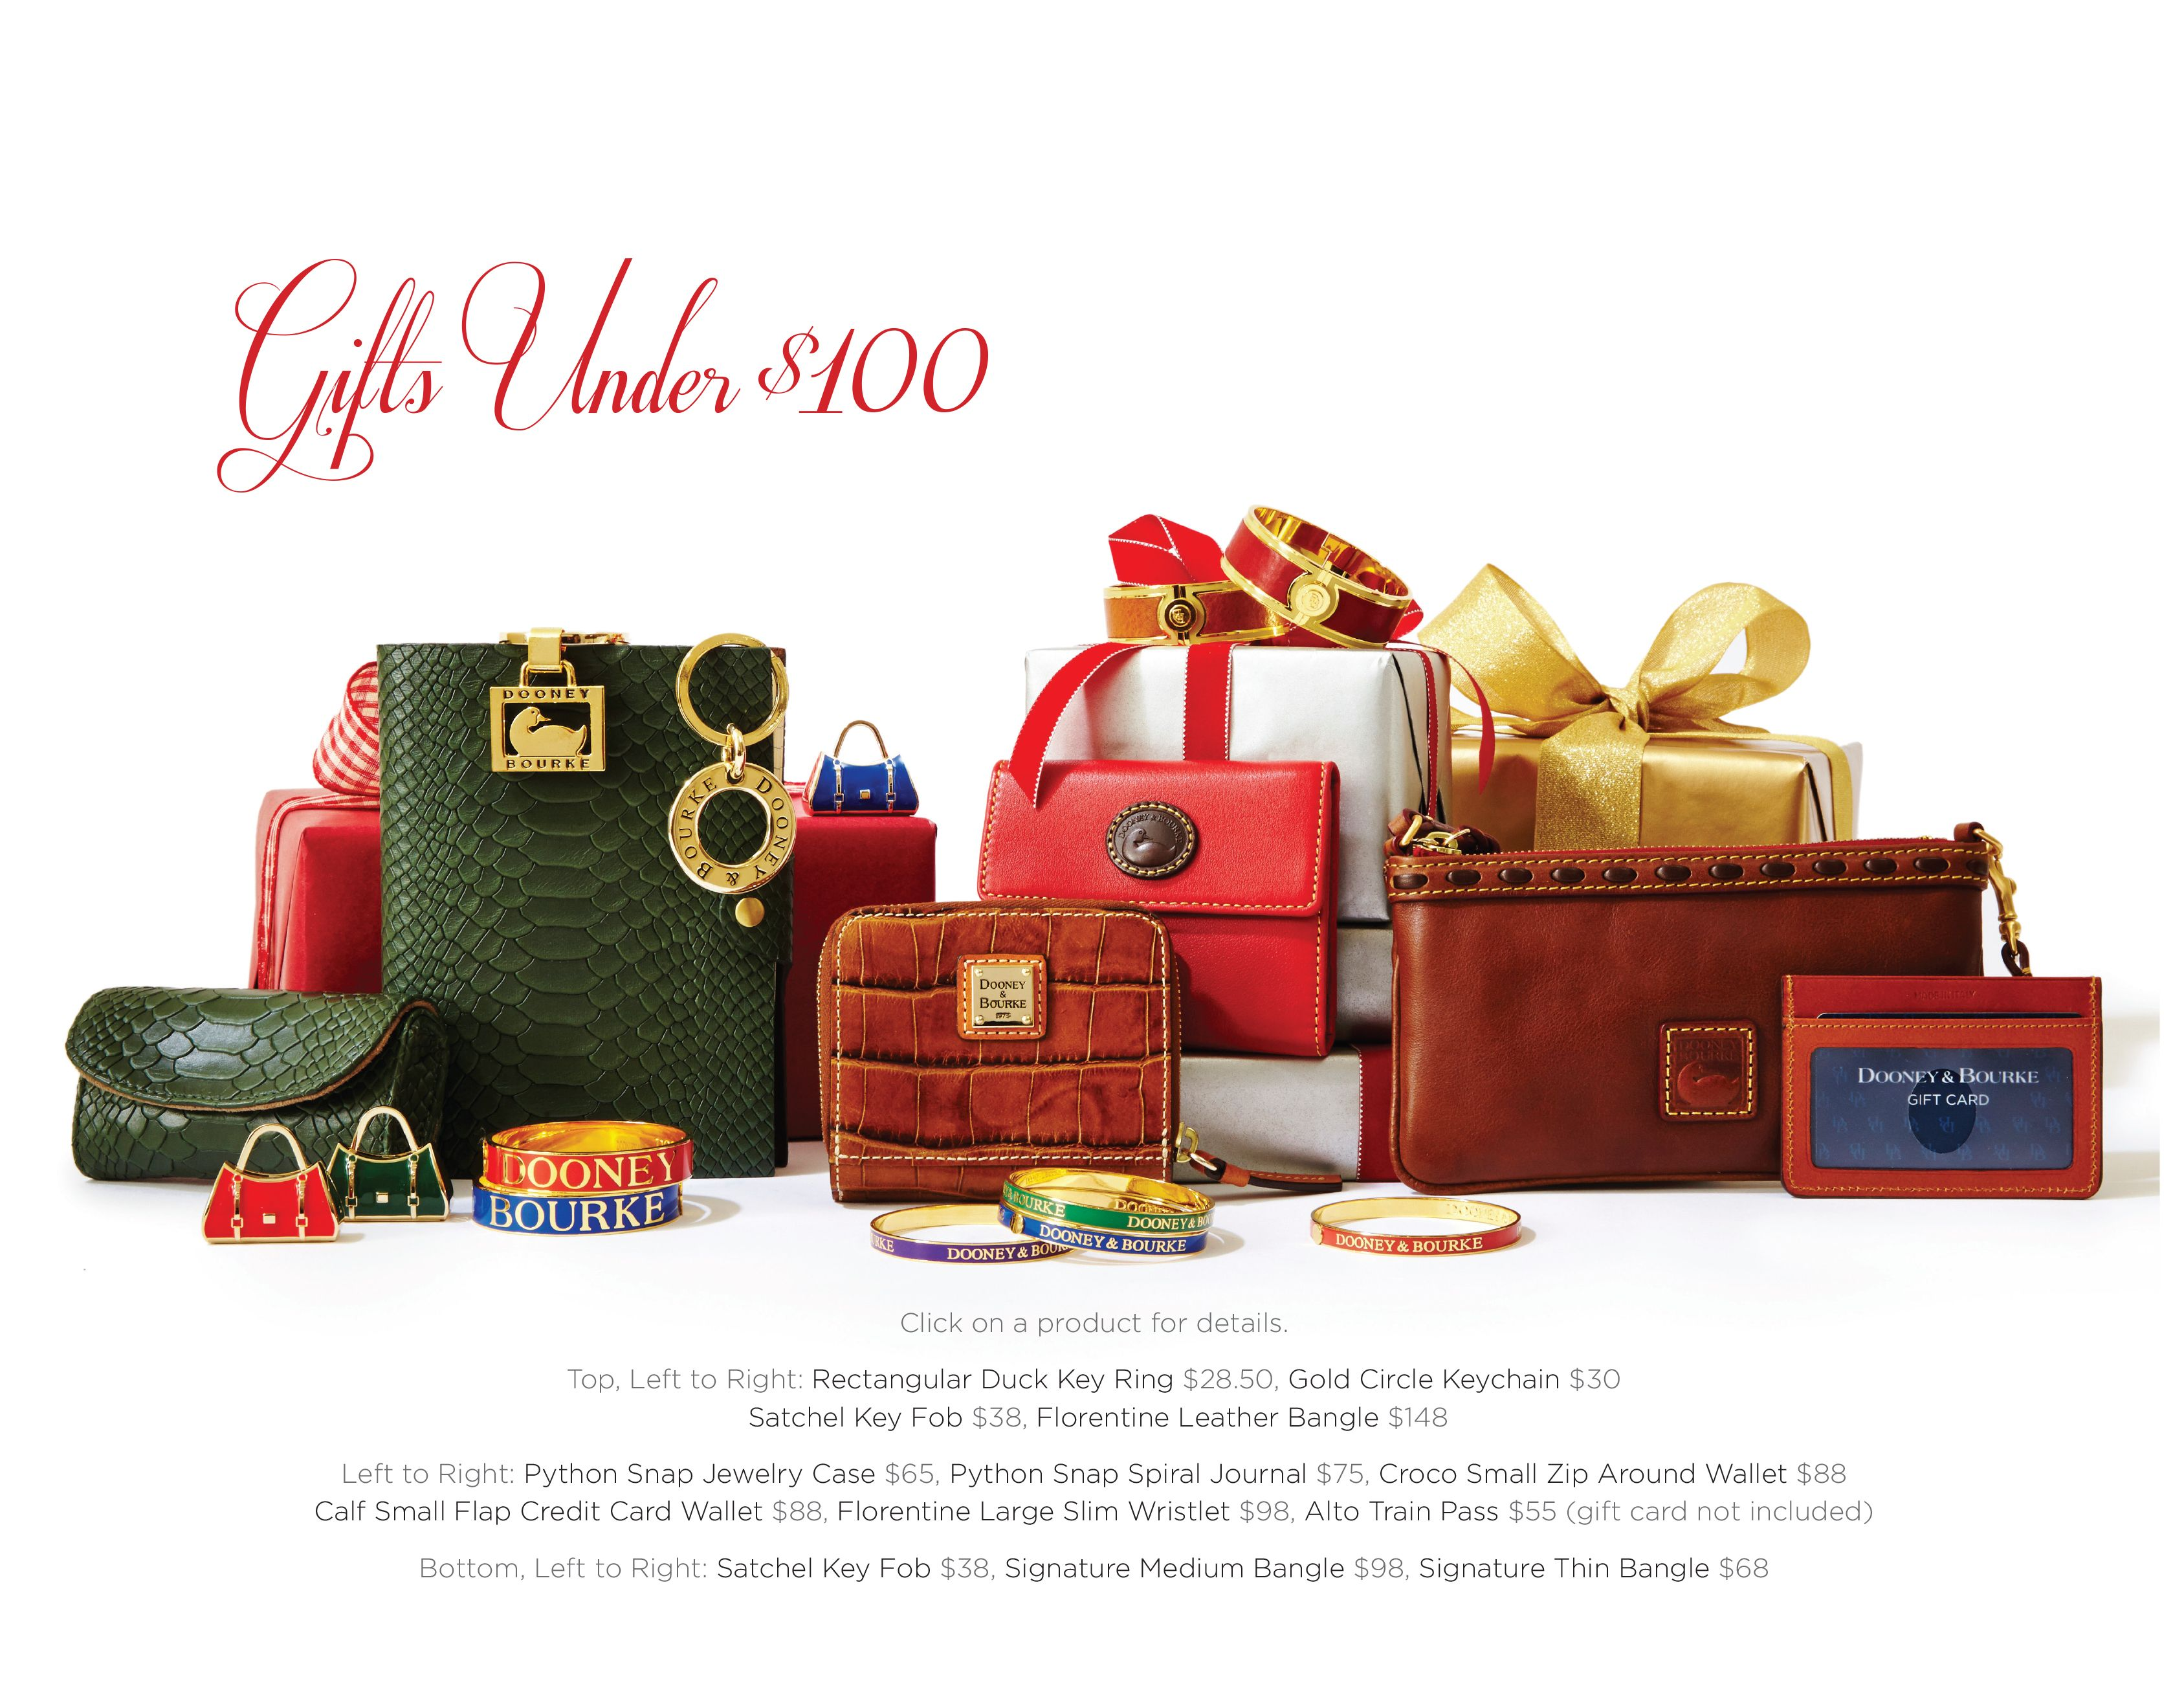 Shop the Dooney & Bourke Holiday Gift Guide now at http://www.dooney.com/OA_HTML/ibeCCtpSctDspRte.jsp?section=61463&dbref=d432&dbmed=social&dbsource=giftguide1113